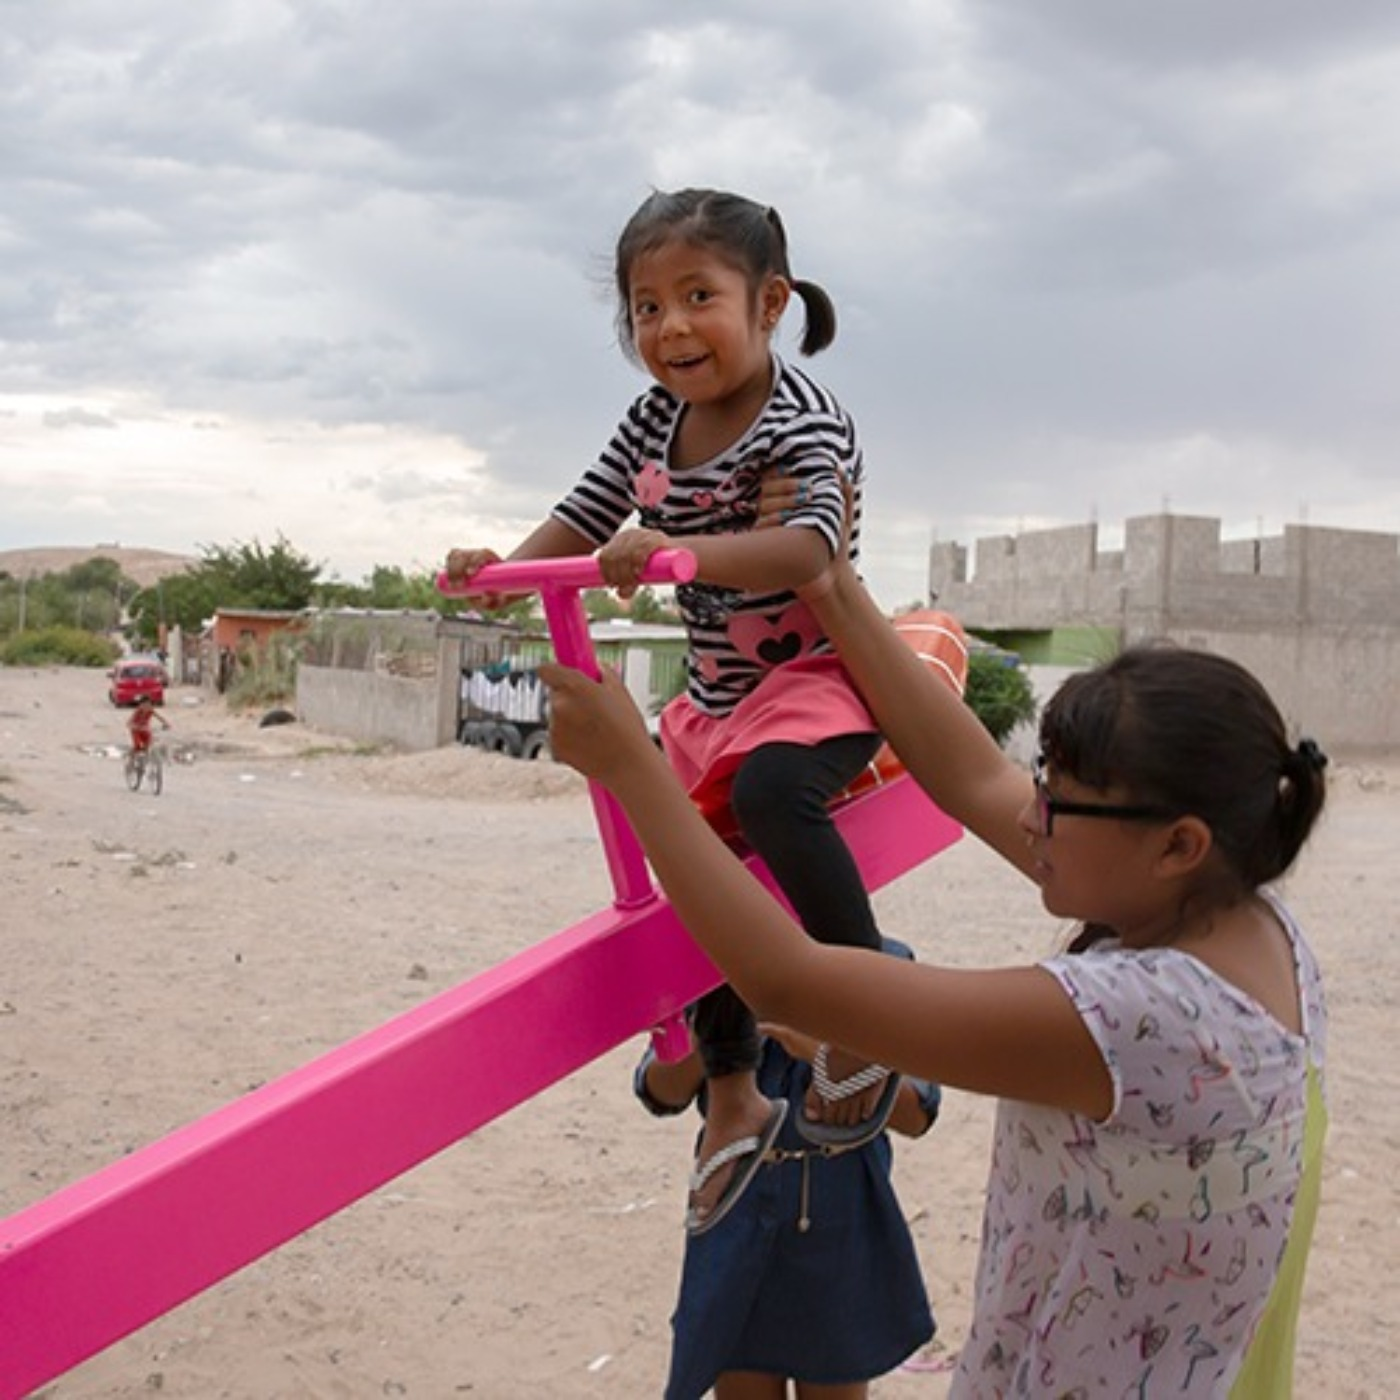 59: Teeter totters as activism: How the border wall became a playground